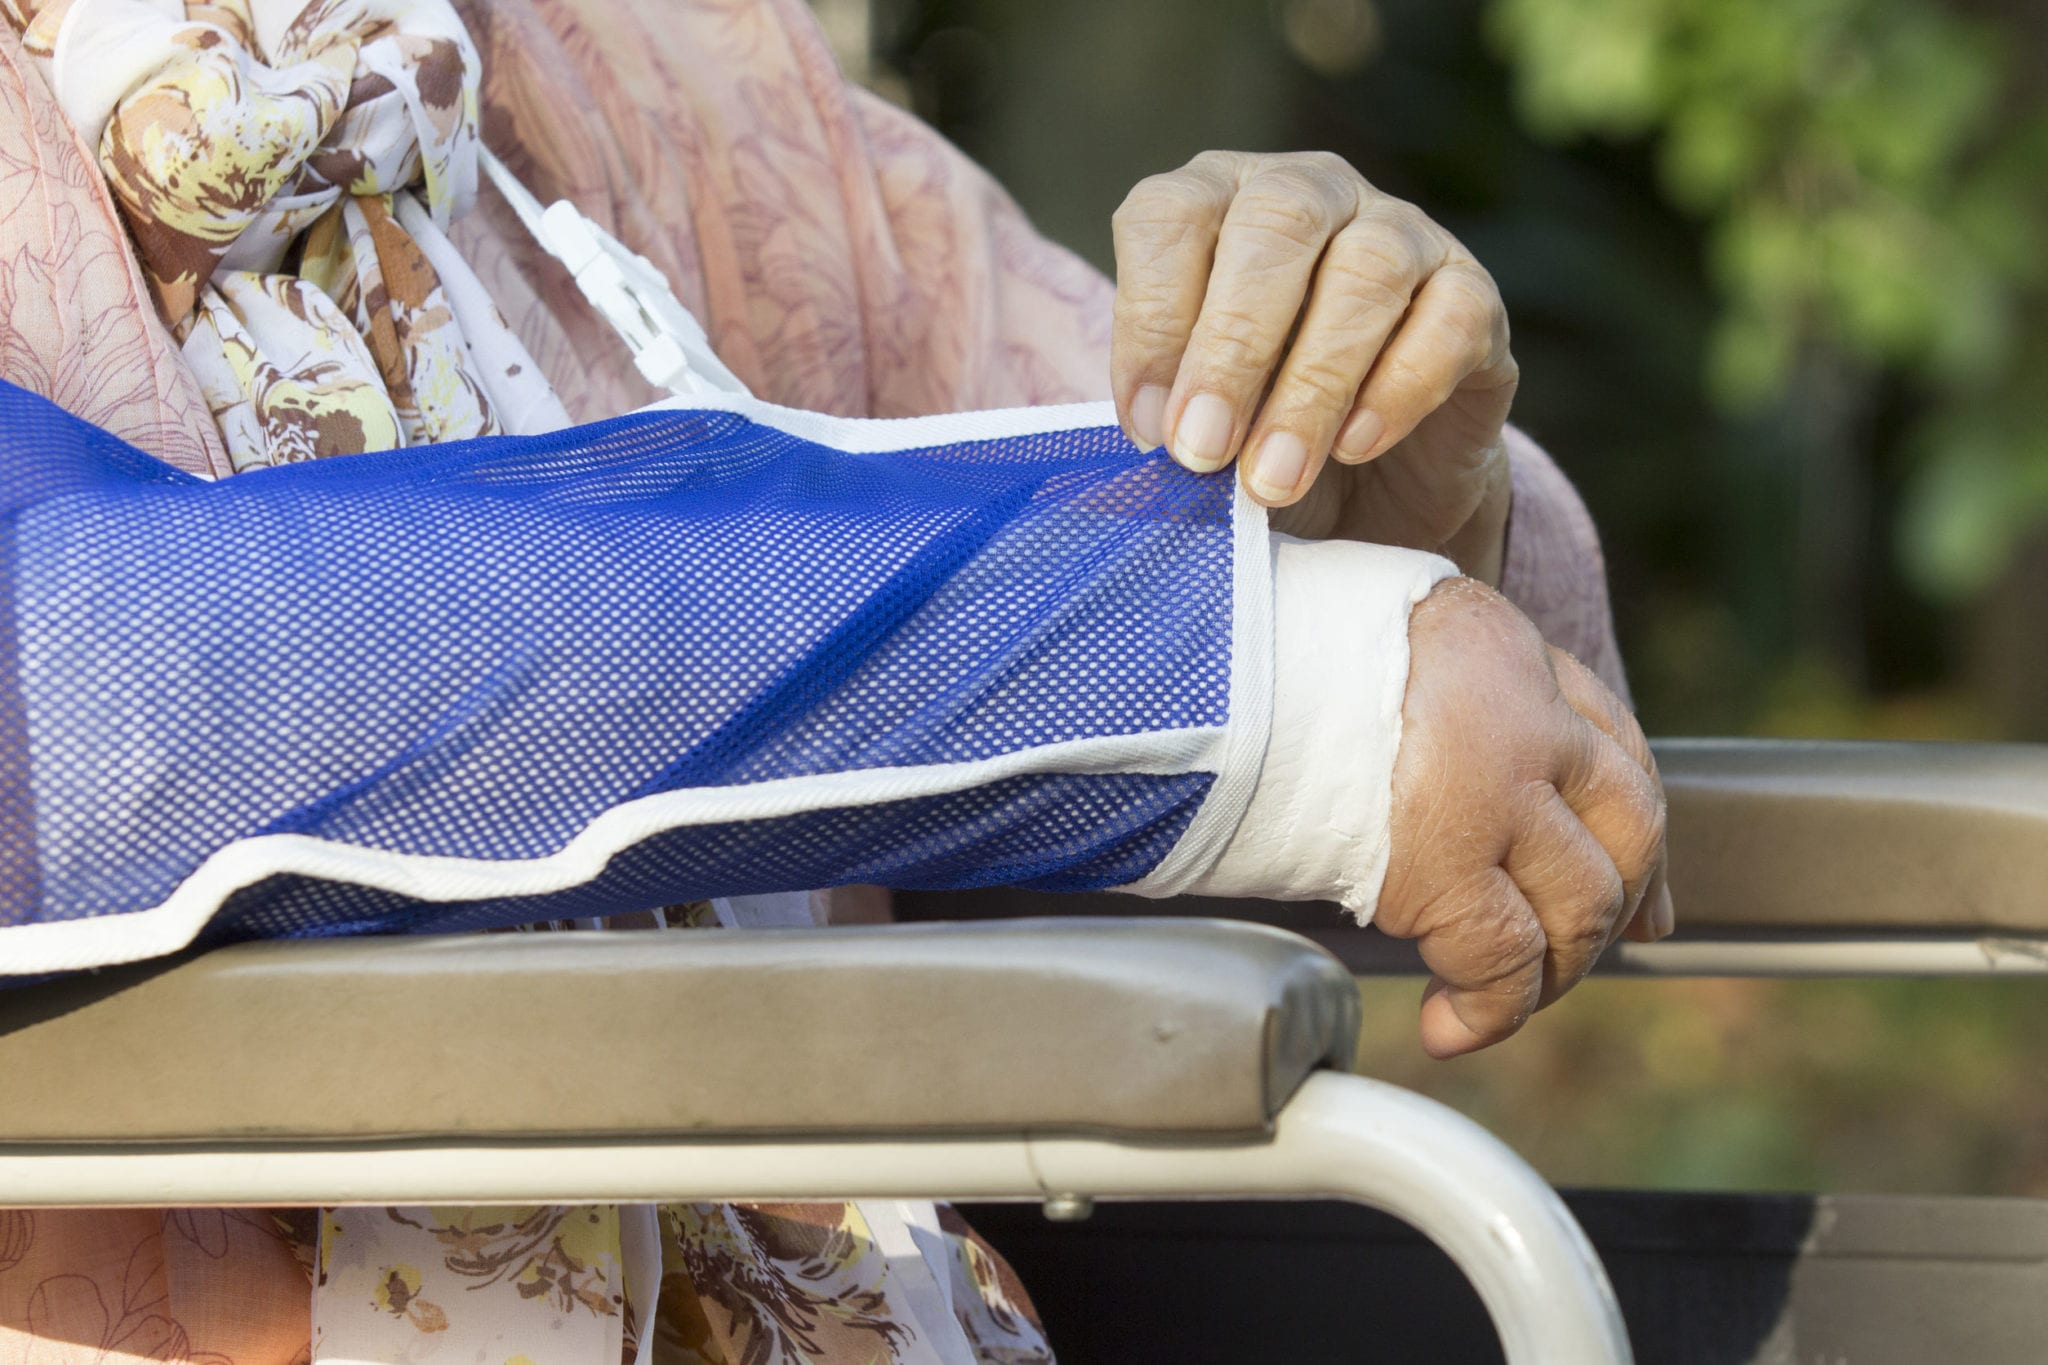 Signs of Texas Nursing Home Abuse